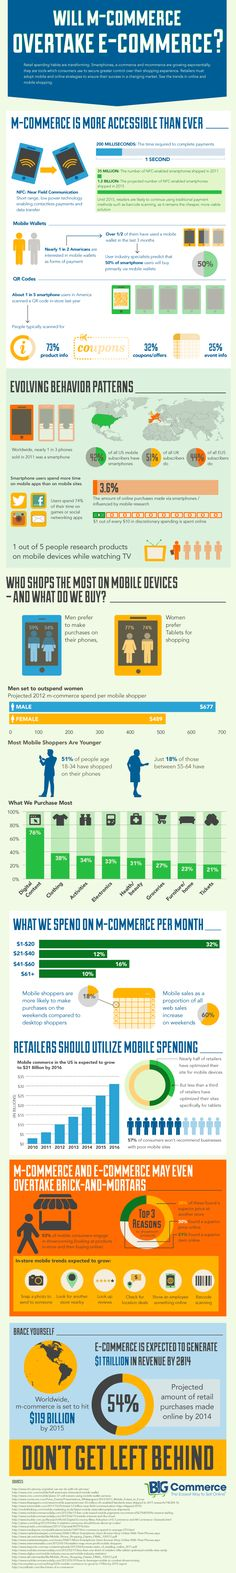 Will M-Commerce overtake E-Commerce?